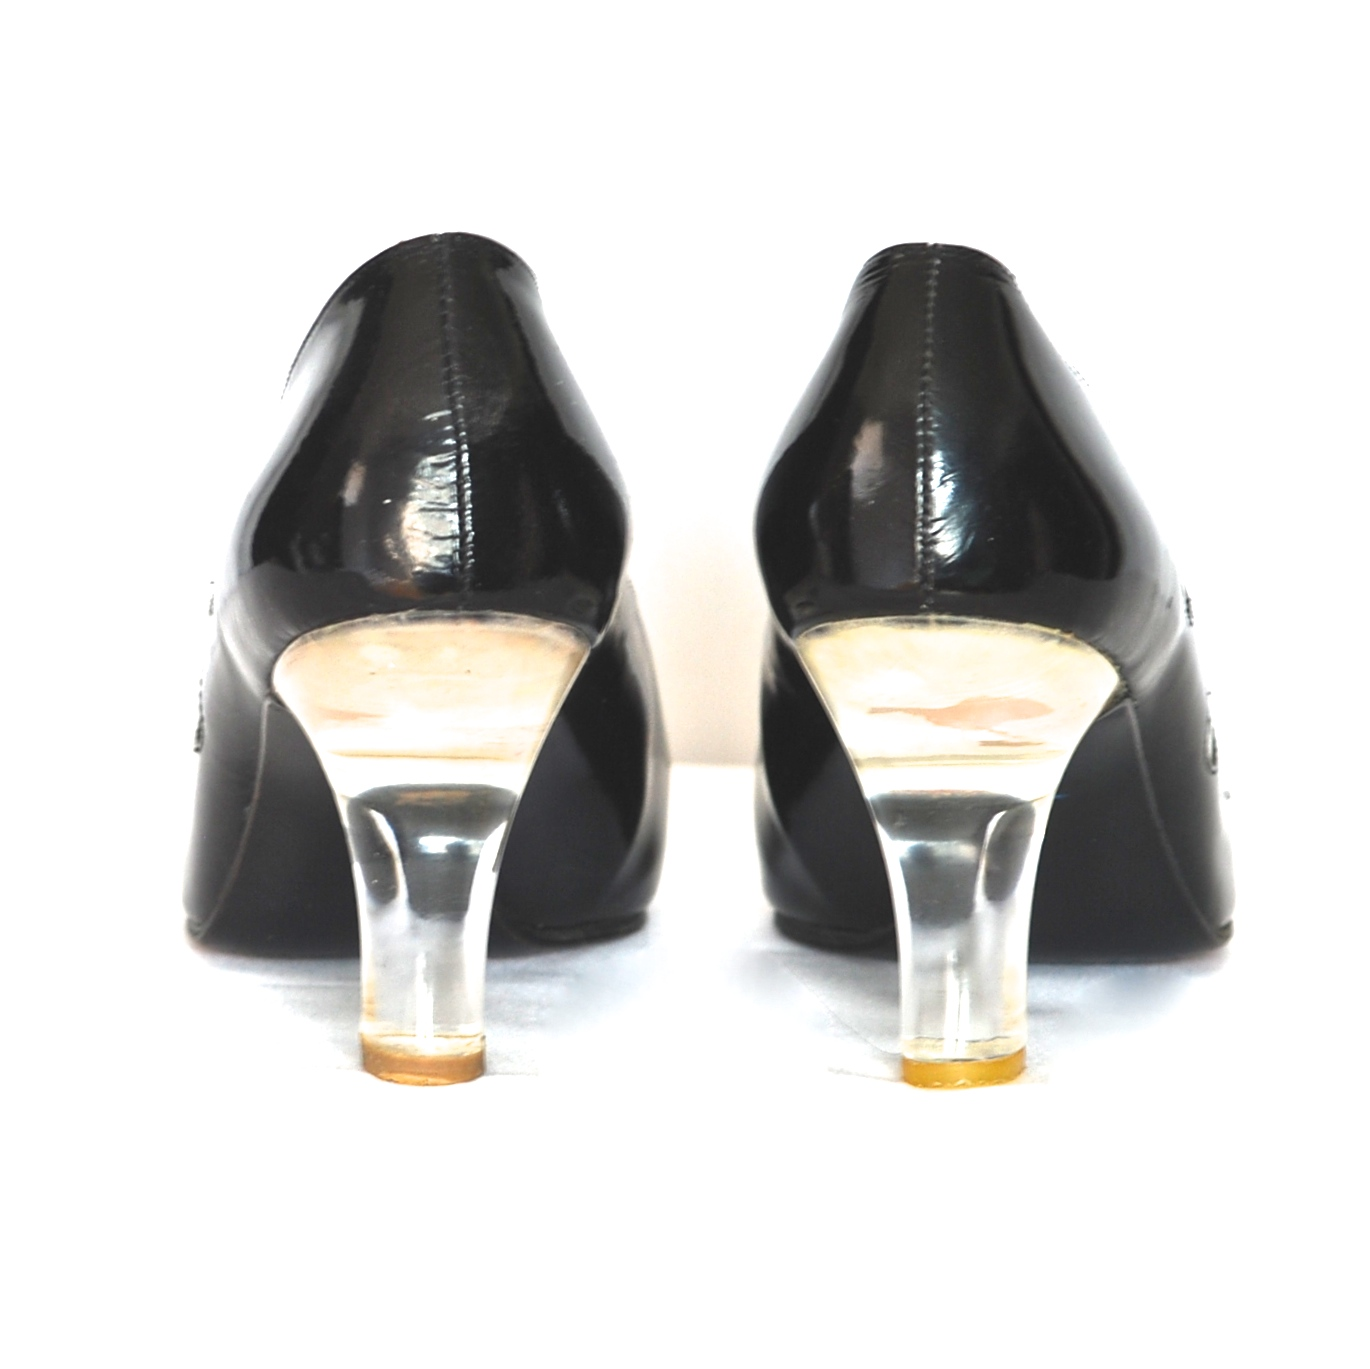 7c3c855b7 Stuart Weitzman Black Patent Pumps With Cut Out Circles   Clear Acrylic  Heels – Spain